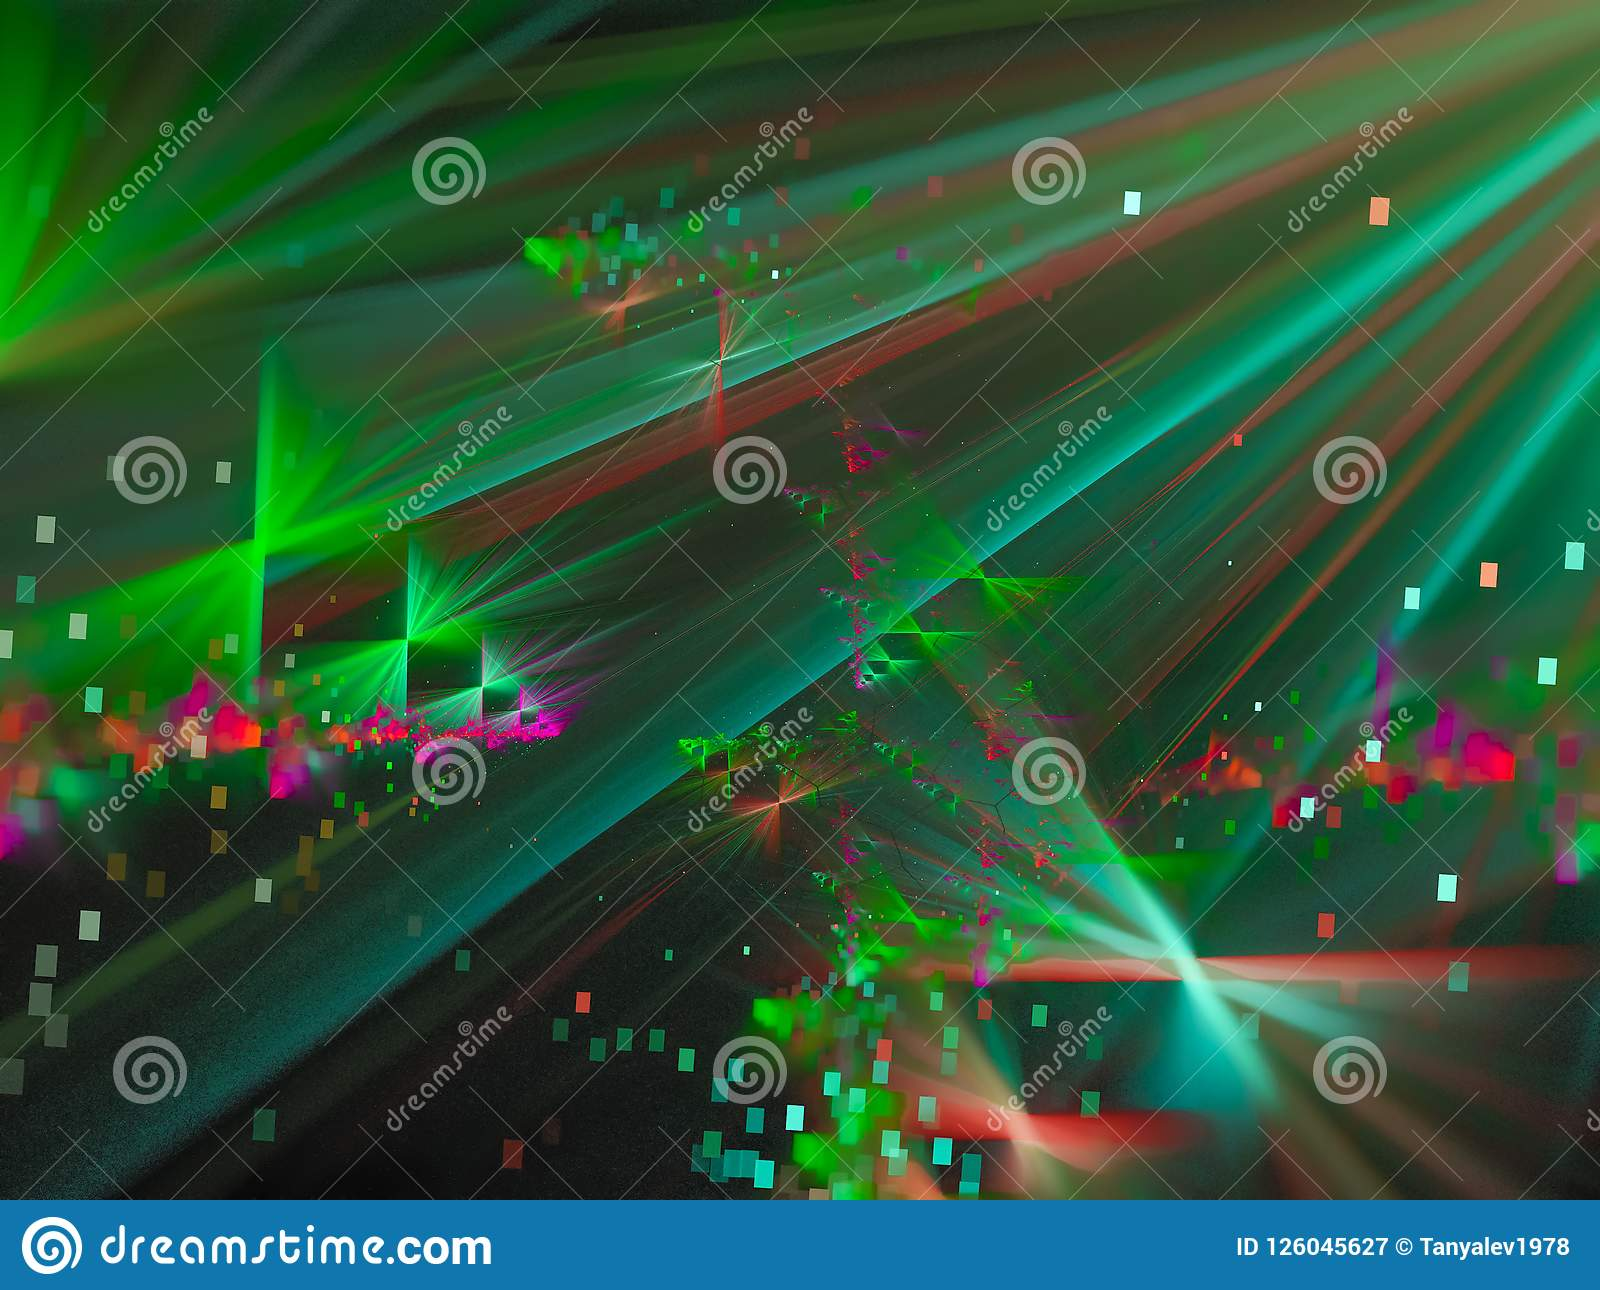 Fractal abstract color, card concept wallpaper generated color background, creative design, disco chaos